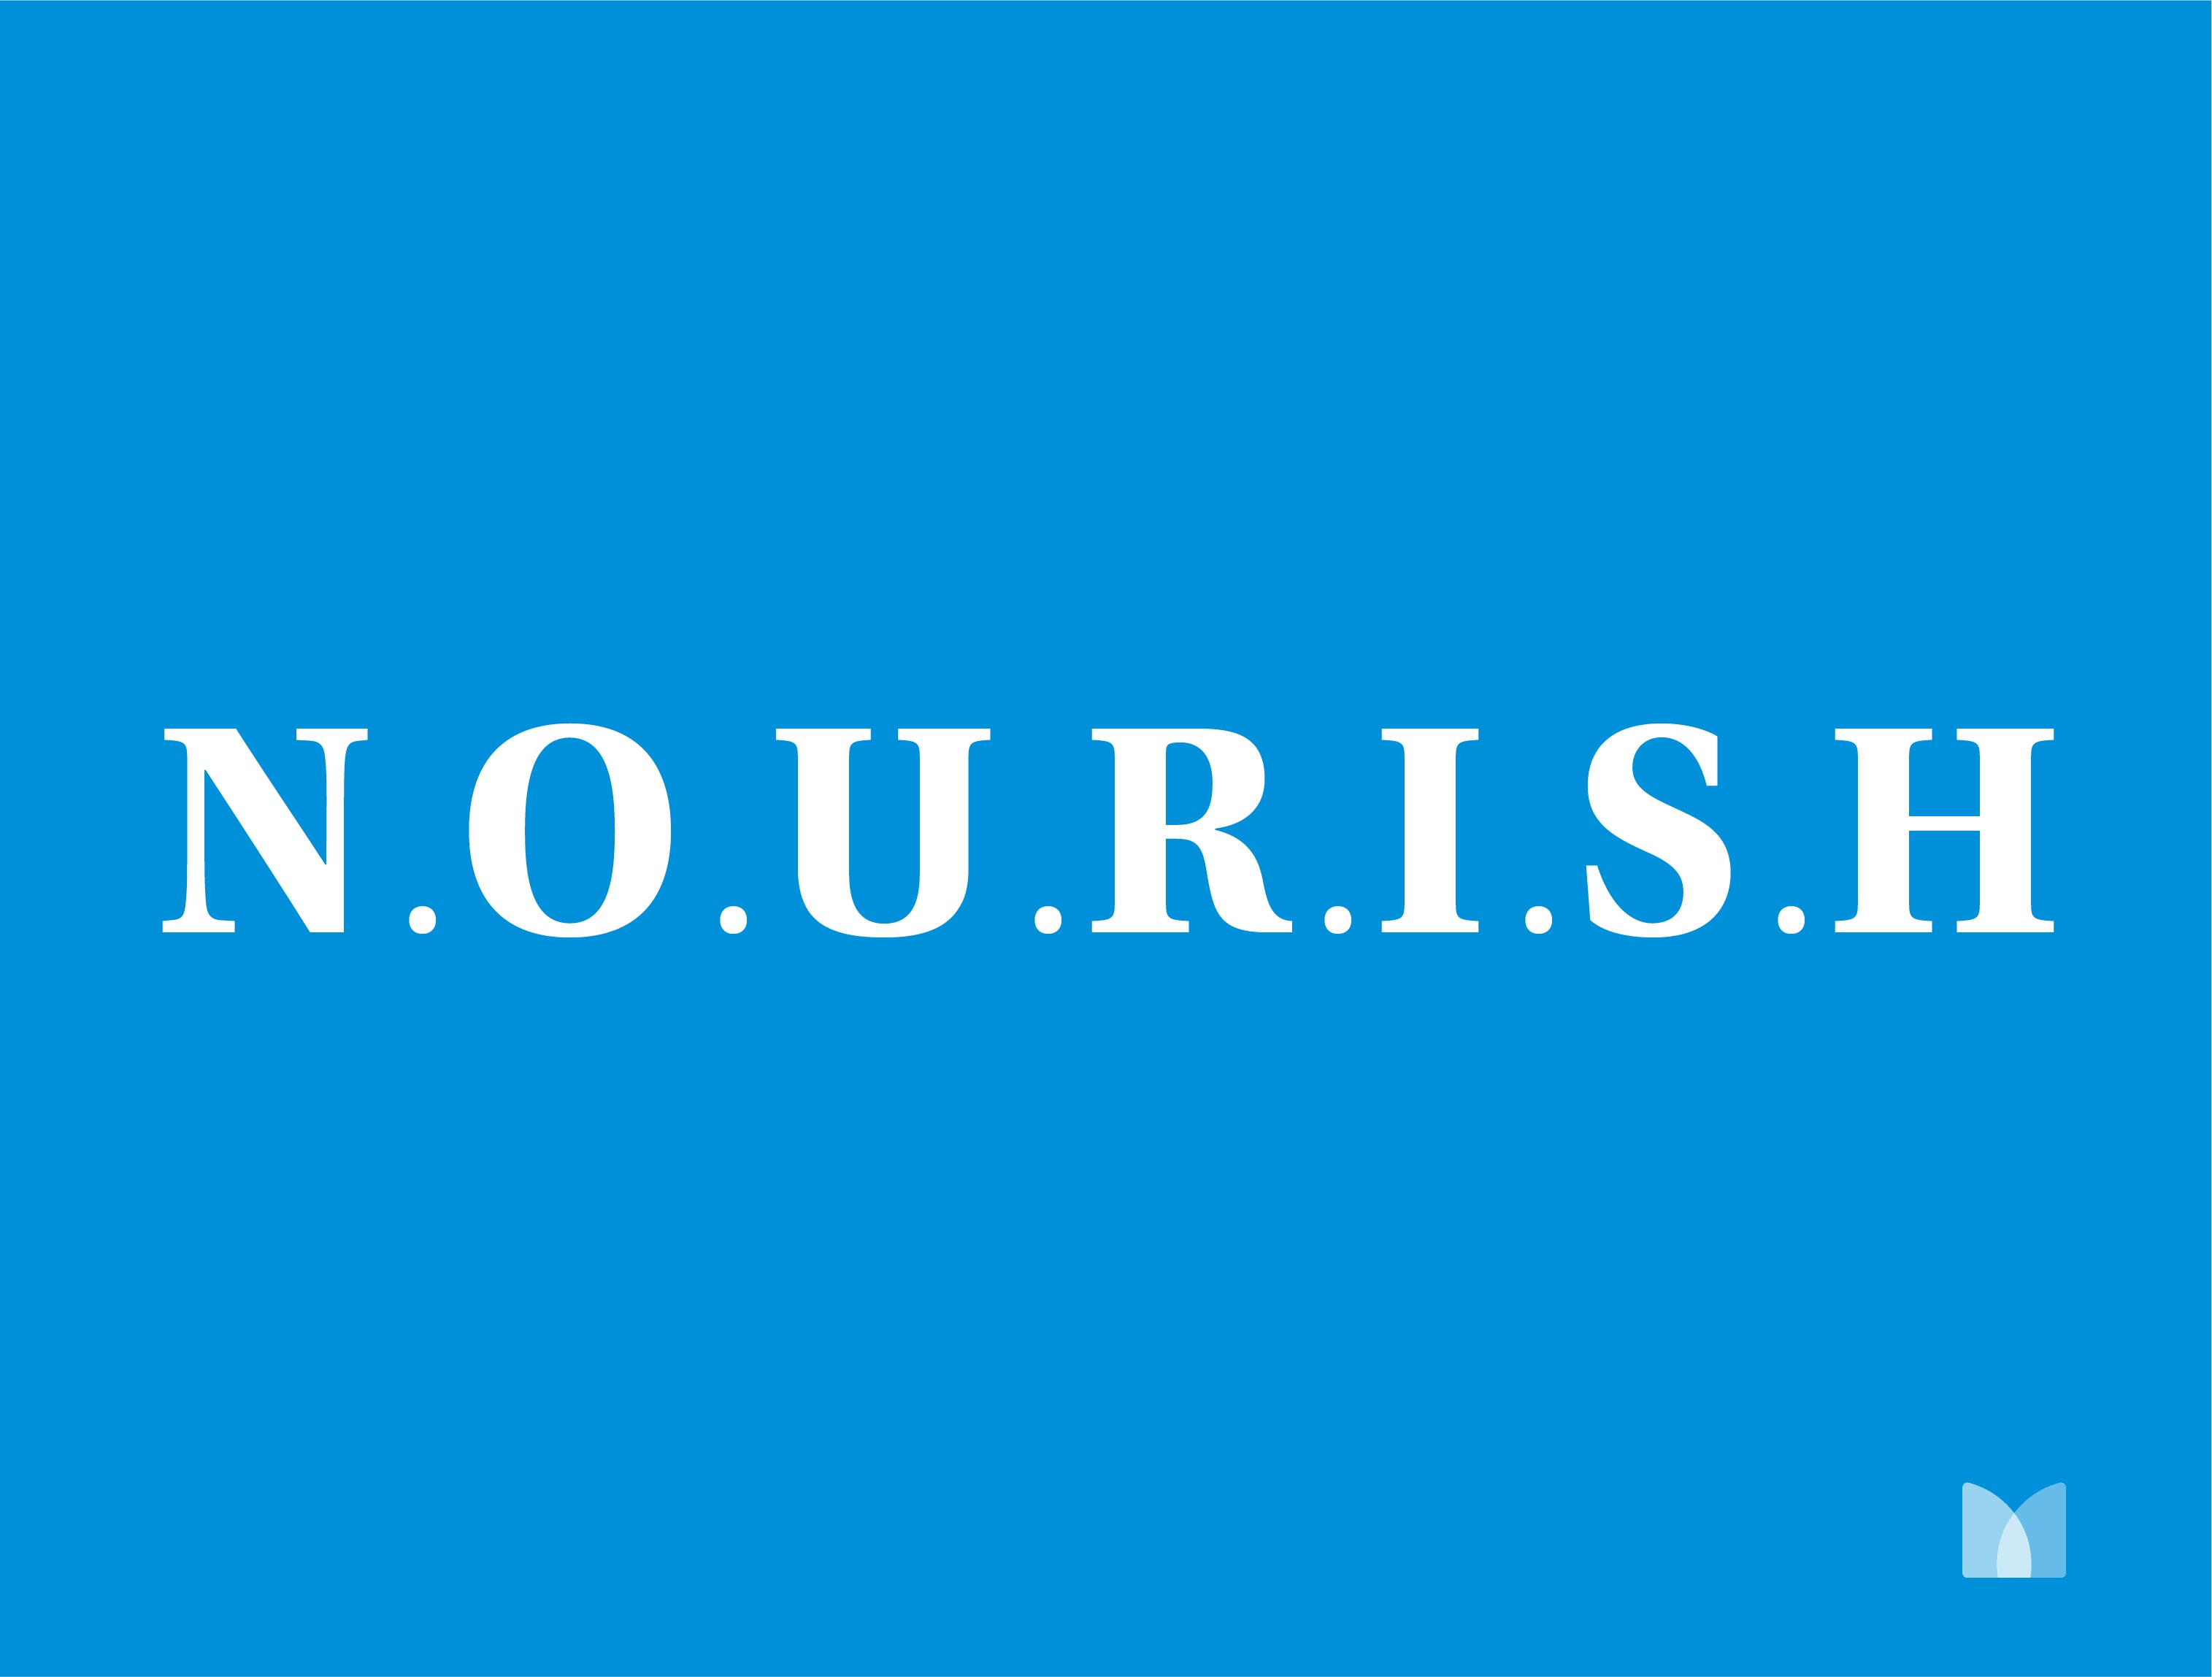 Metlife's Nourish program